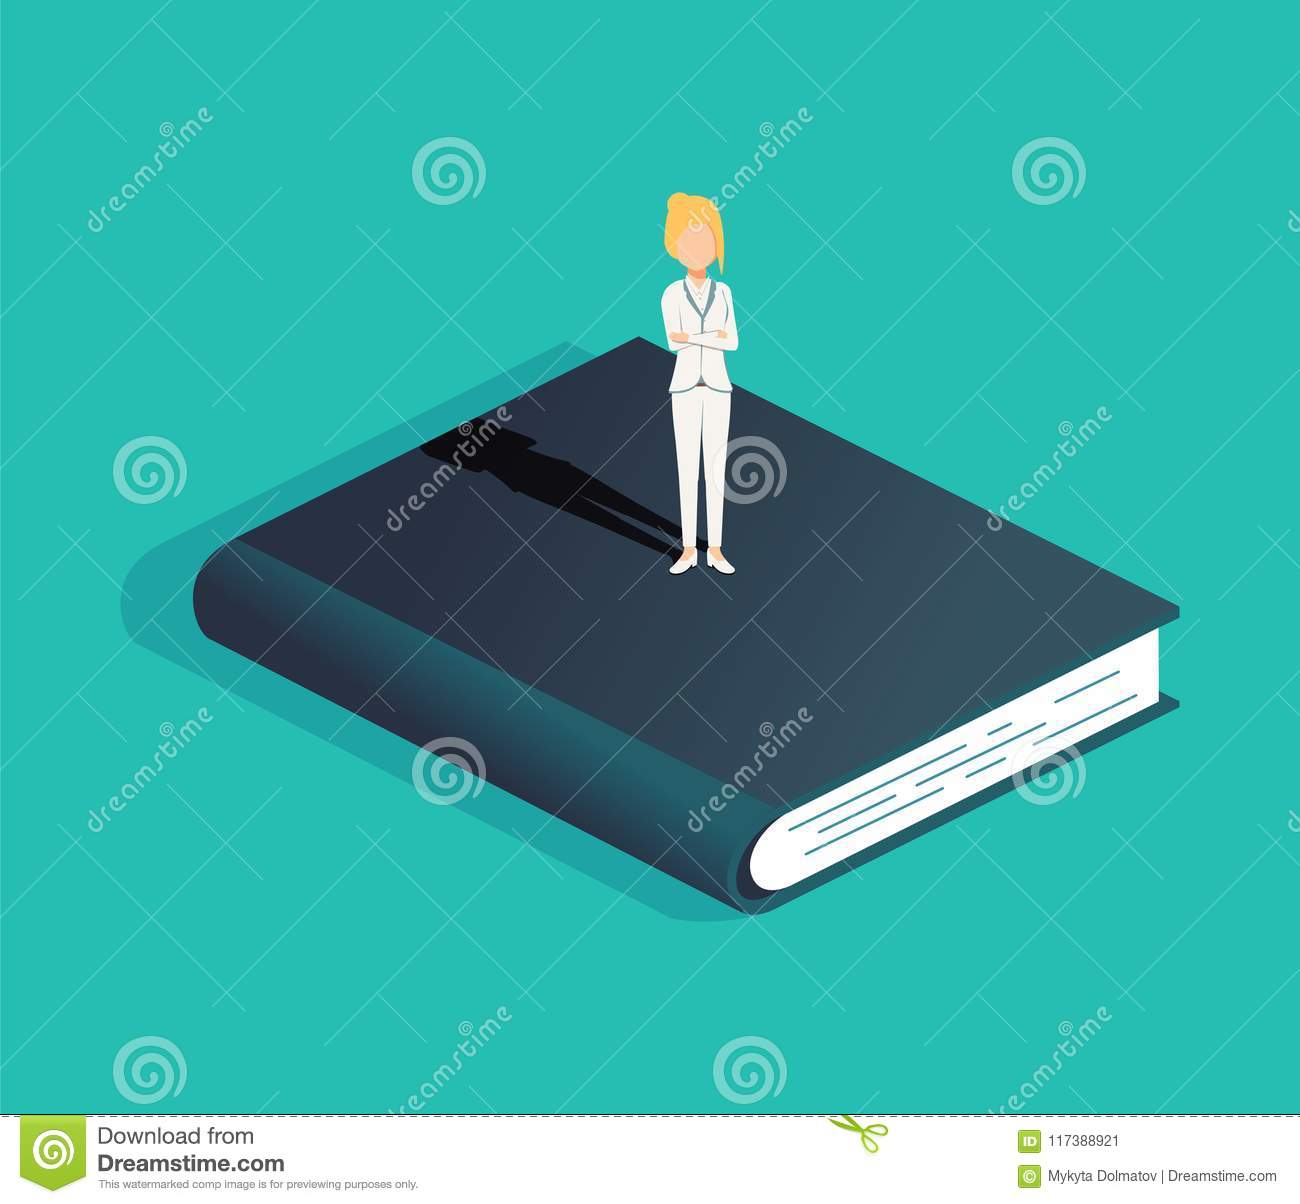 Business and education vector concept with business woman standing on a book. Symbol of career opportunity